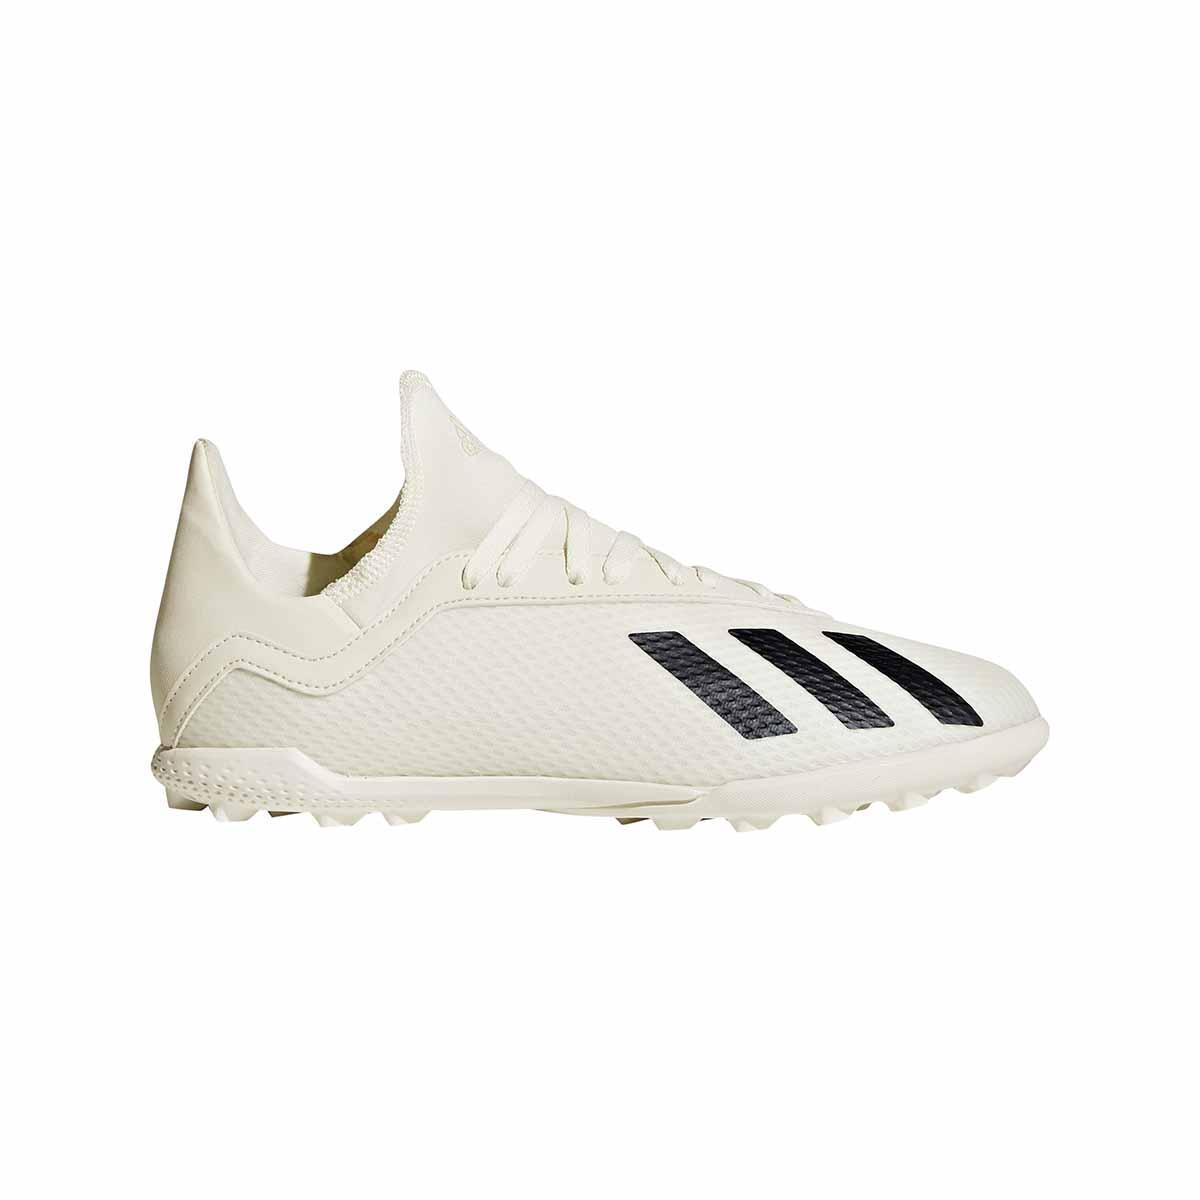 low priced c6019 8f288 adidas X Tango 18.3 TF J - Off White/Black/Metallic Gold